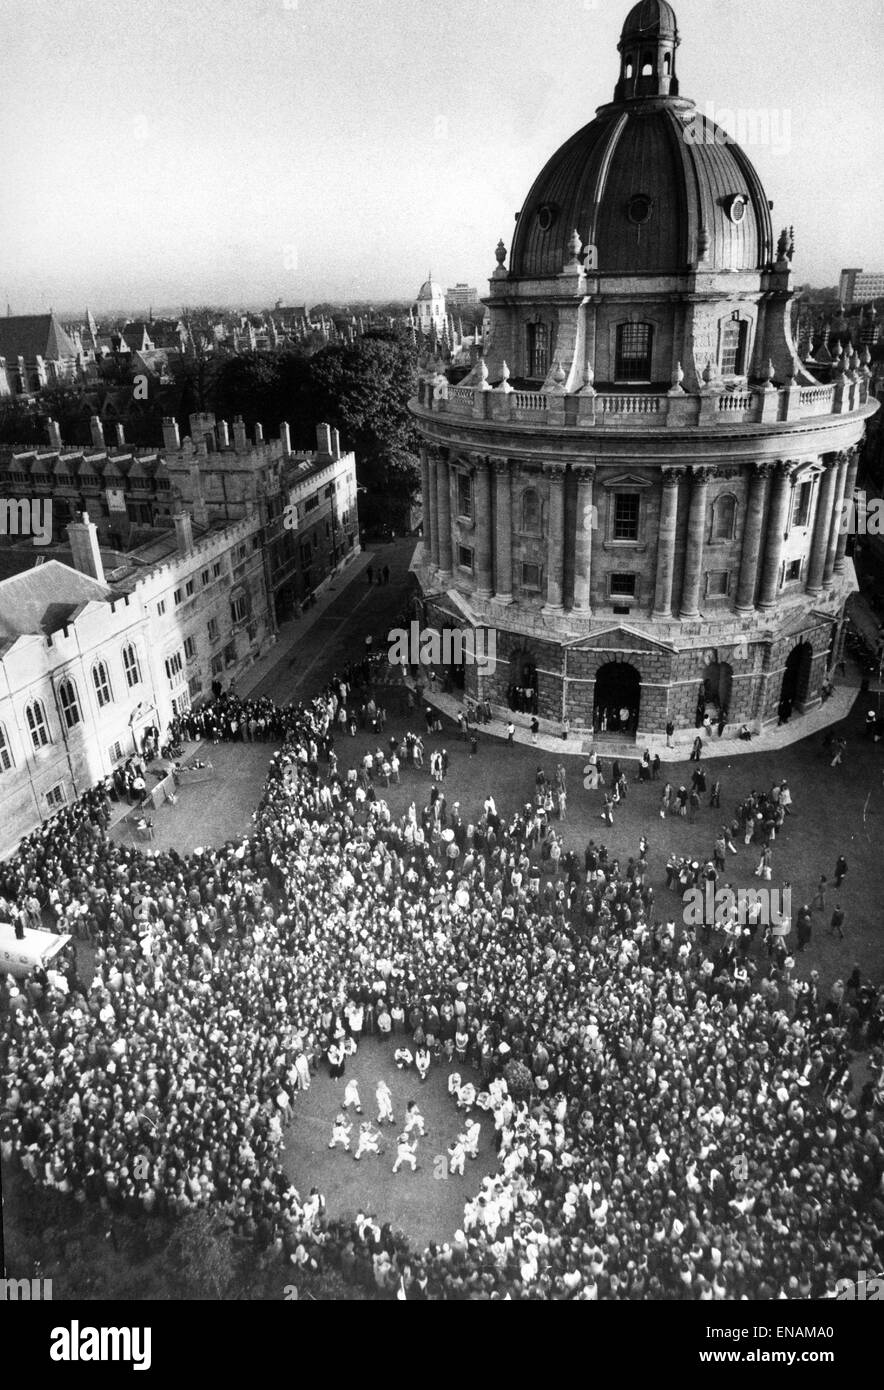 FILE PHOTOS: Oxford, Oxfordshire, UK. 1st May 1974. Oxford May Day celebration in Radciliffe Square, Oxford. The - Stock Image